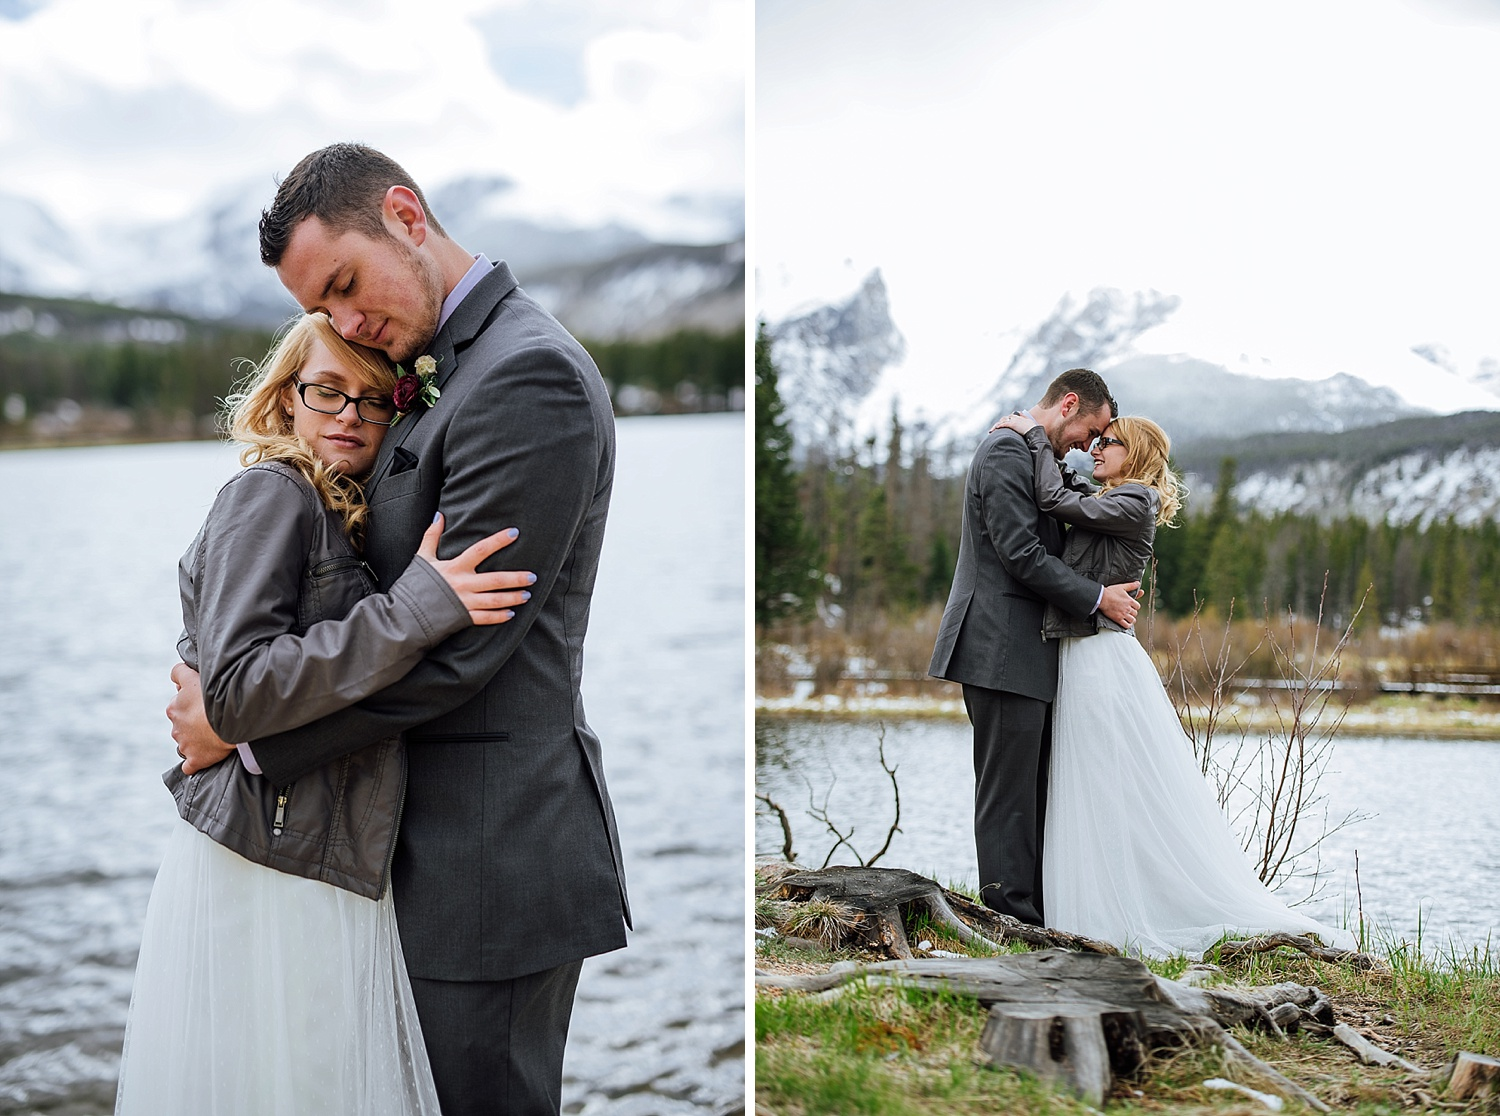 Rocky Mountain National Park is such a wonderful place to have a wedding- especially a winter one. I love how the bride is wearing a jacket over her dress and there is still snow everywhere! It's so pretty! Photo by Maddie Mae Photography